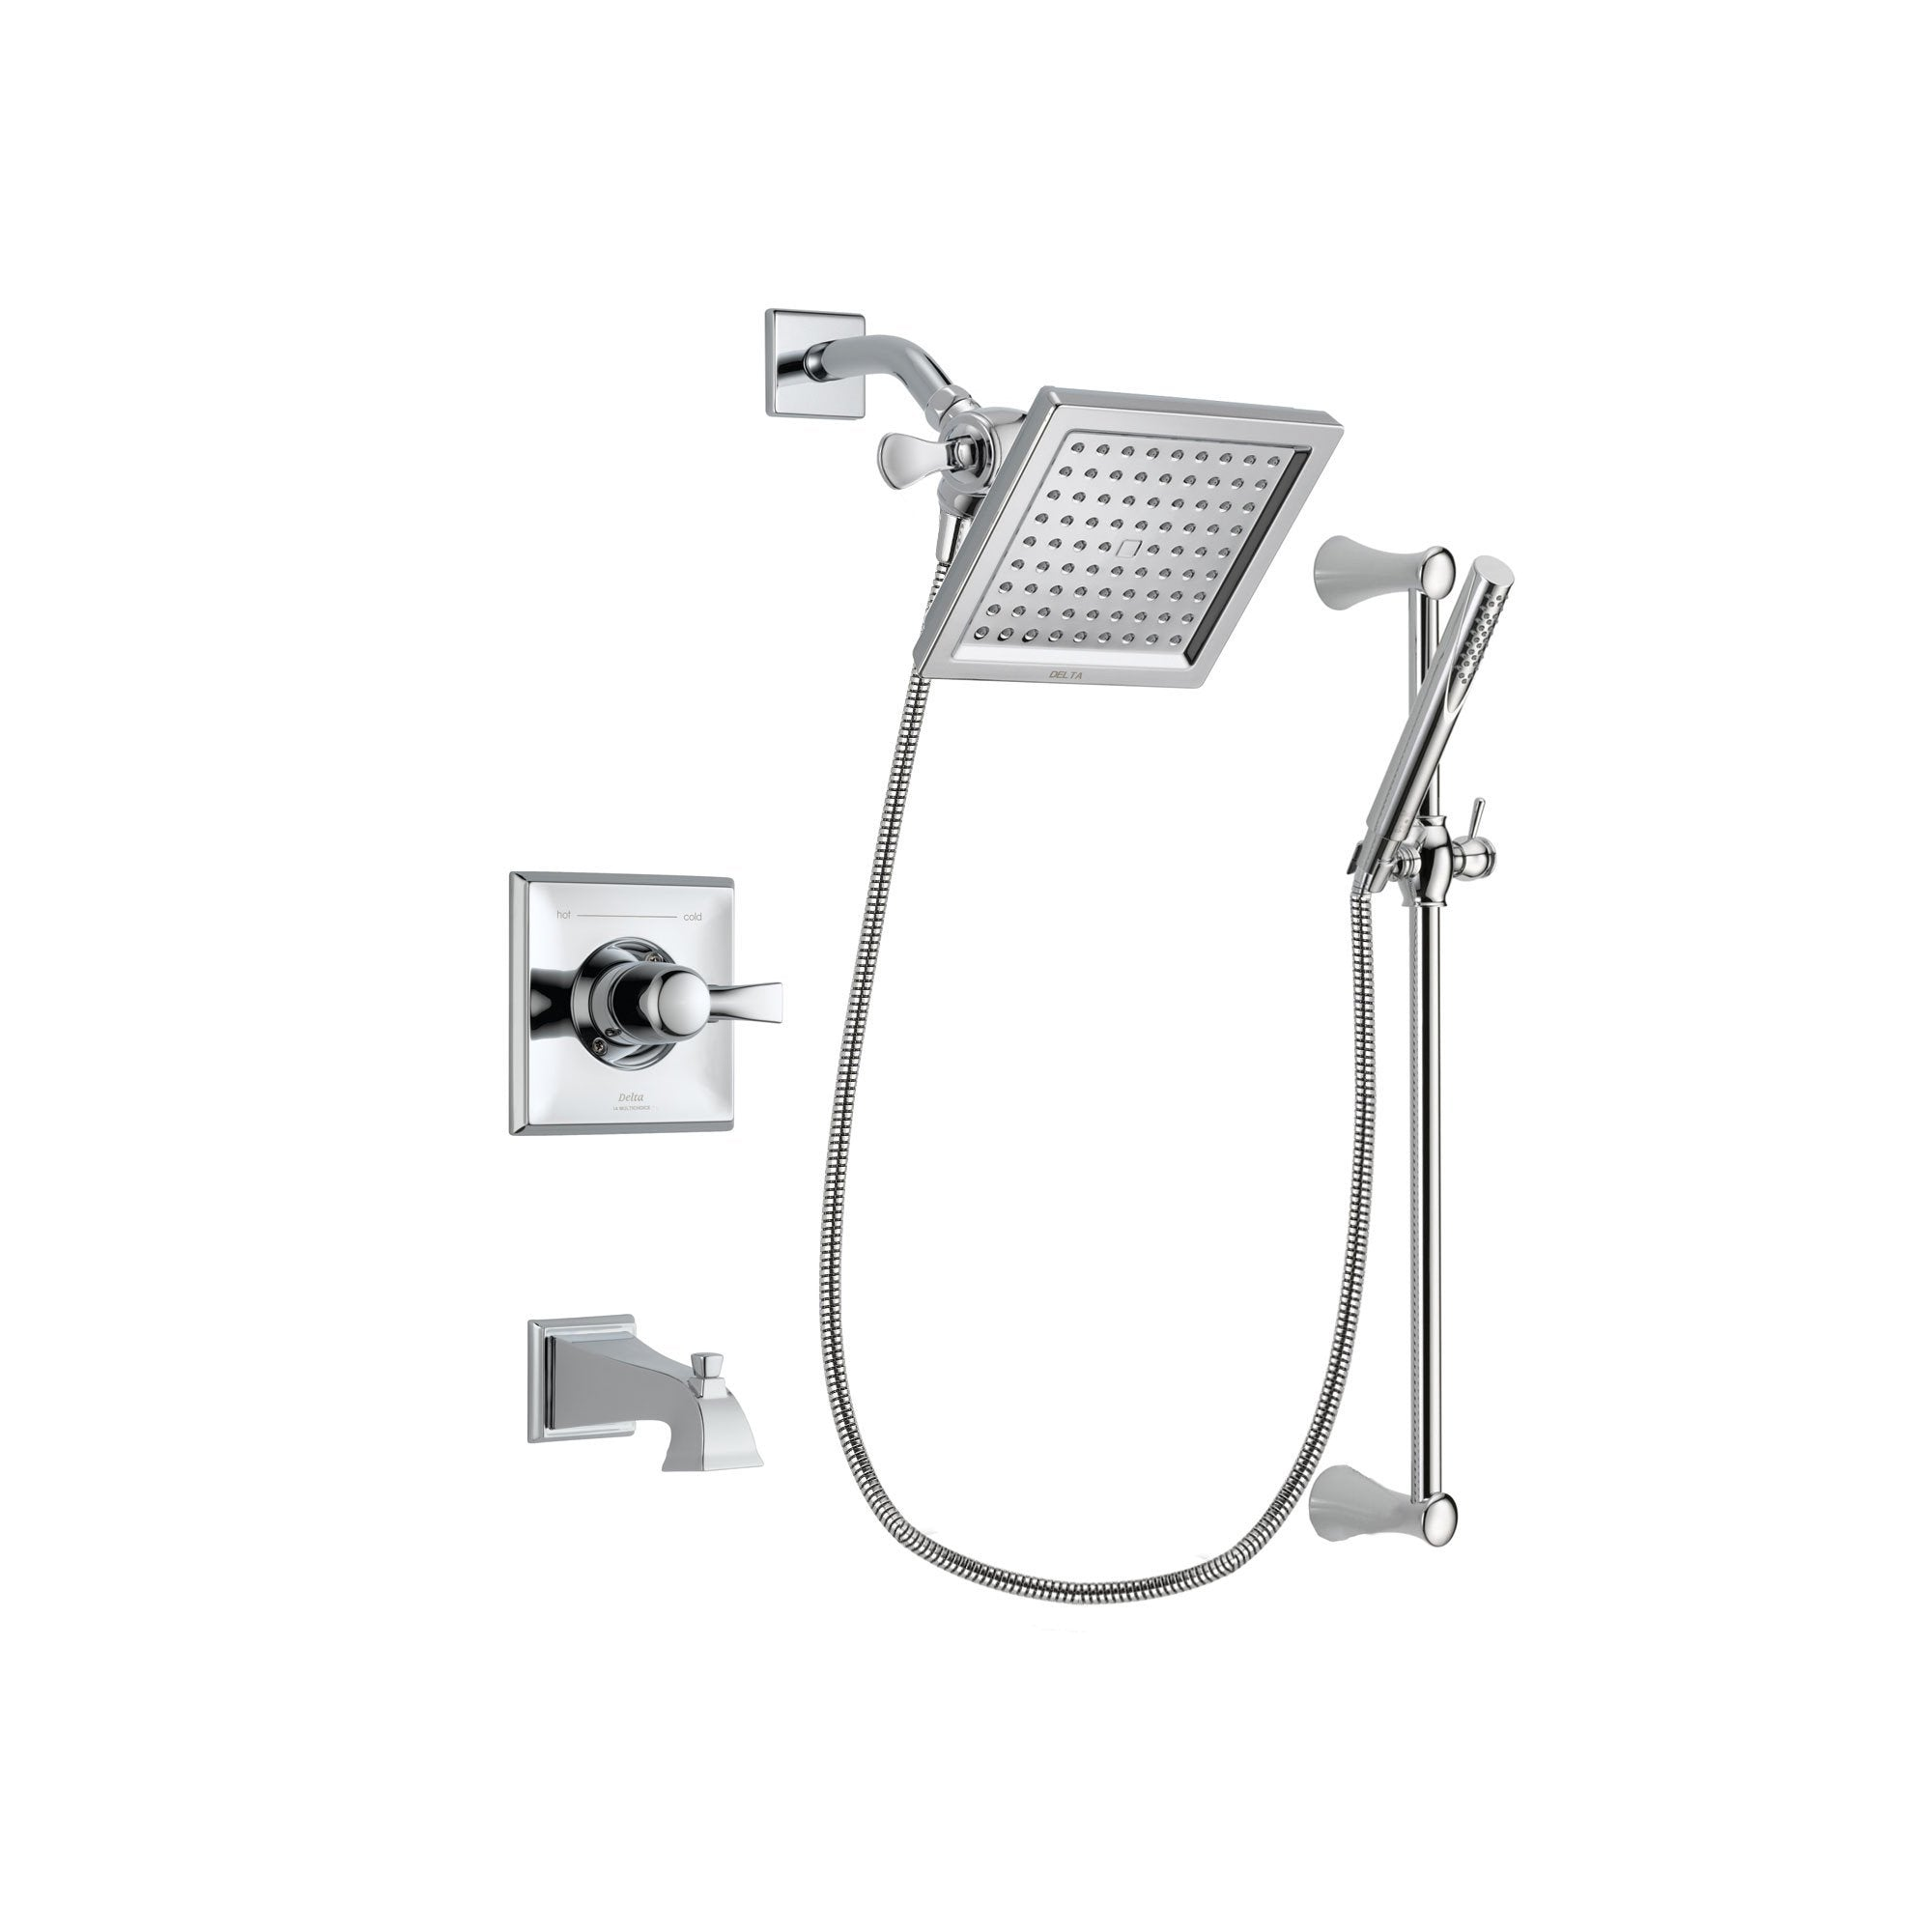 Delta Dryden Chrome Tub and Shower Faucet System Package w/ Hand Shower DSP0263V